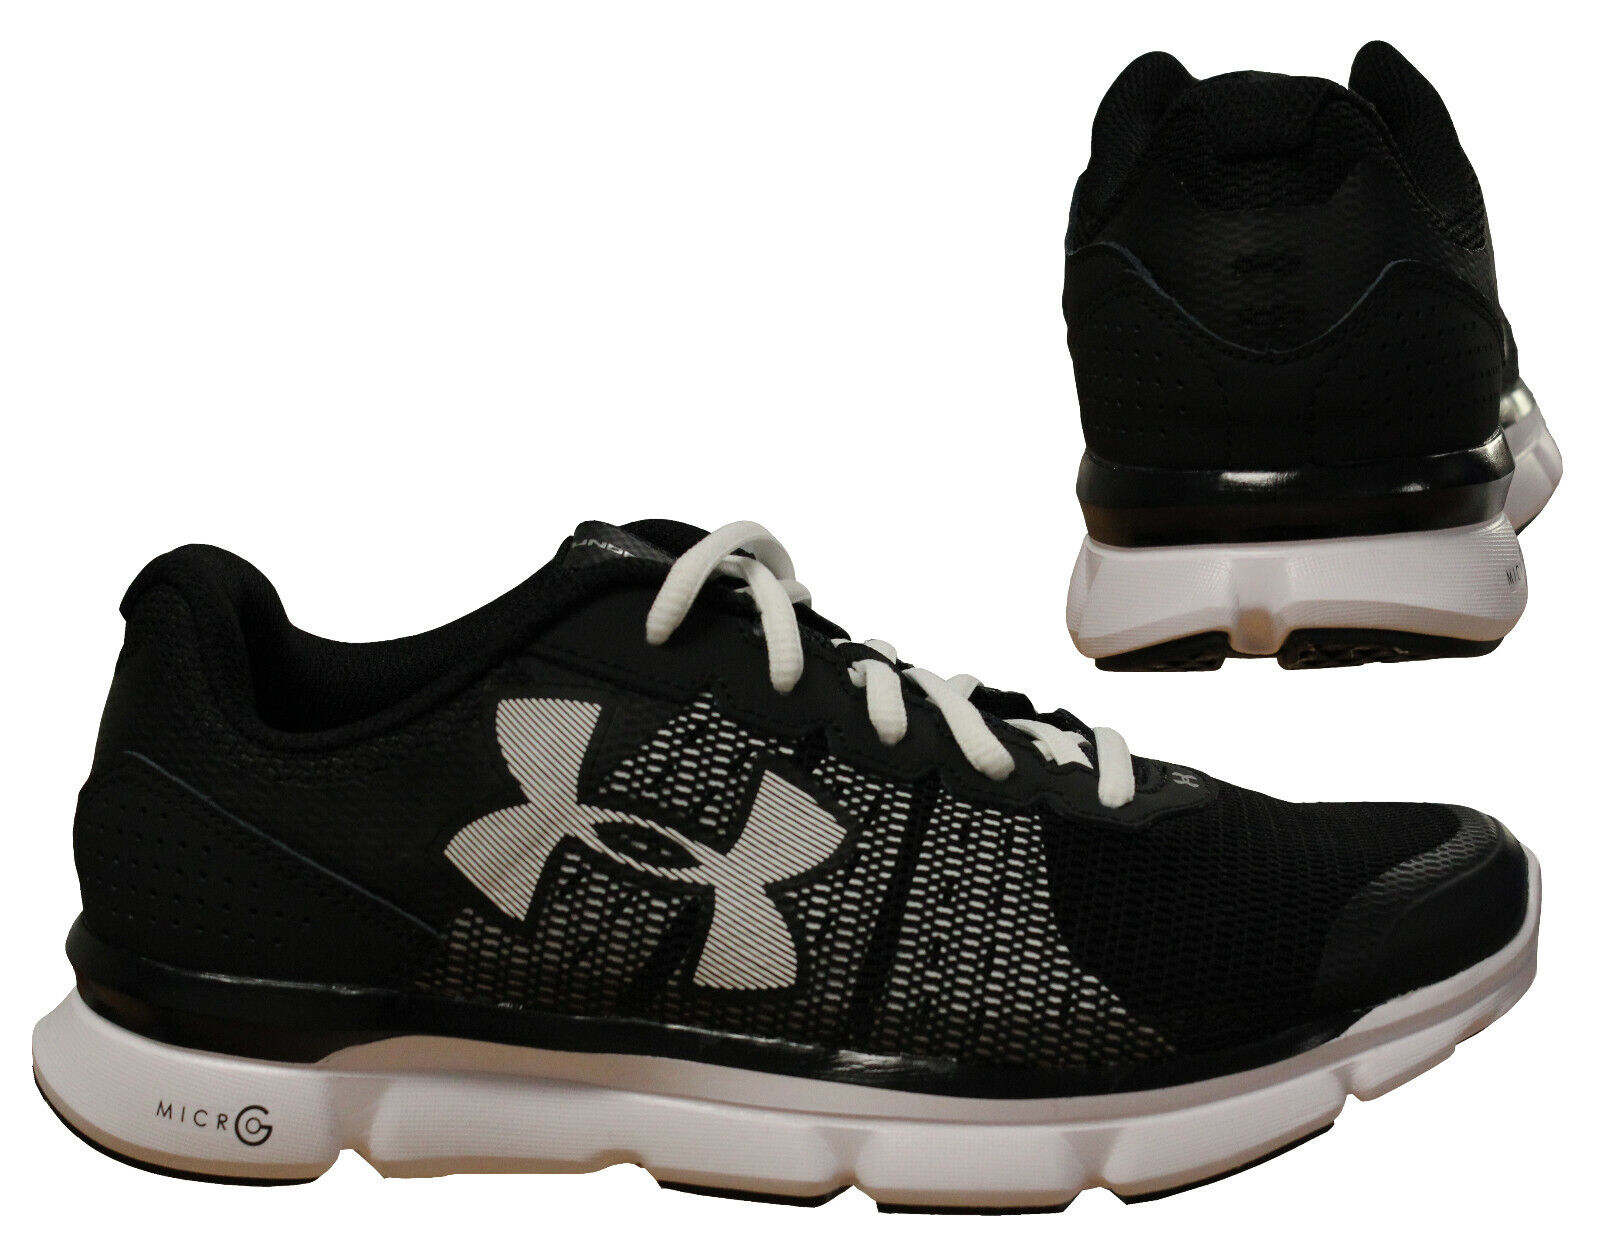 c1557cc159d9 Under Armour Micro G Speed Swift Womens Trainers Running Shoes ...